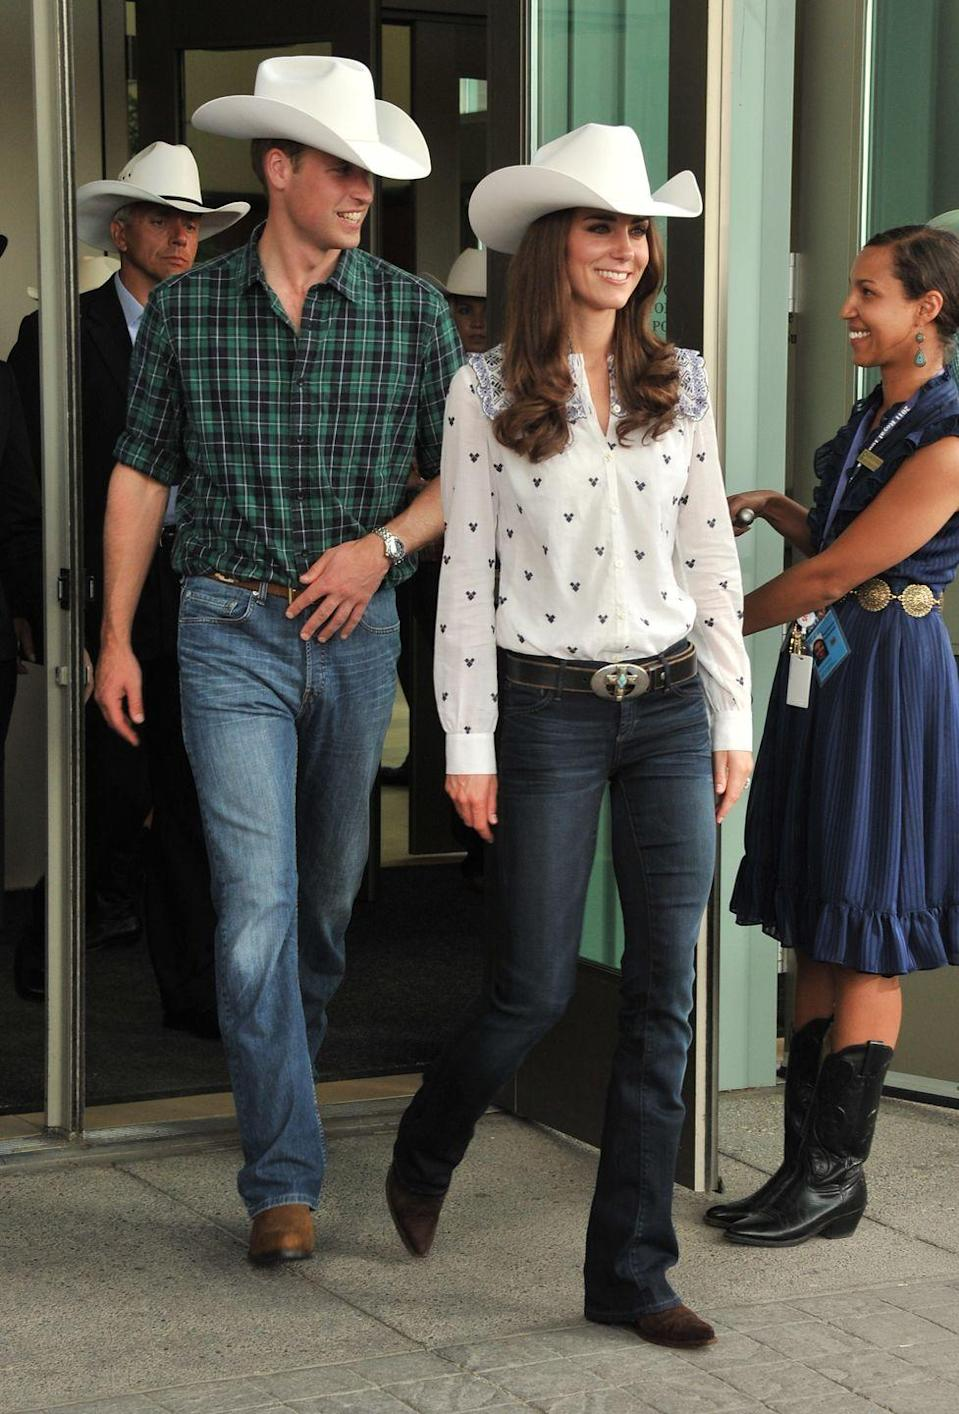 <p>We love a vintage K-Mid look, and this has to be one of the best. On a visit to Canada in 2011, the Duke and Duchess of Cambridge wore some very Wild West getups to watch the Calgary Stampede. Remember low rise jeans? And those hats? Yeehaw, y'all.</p>